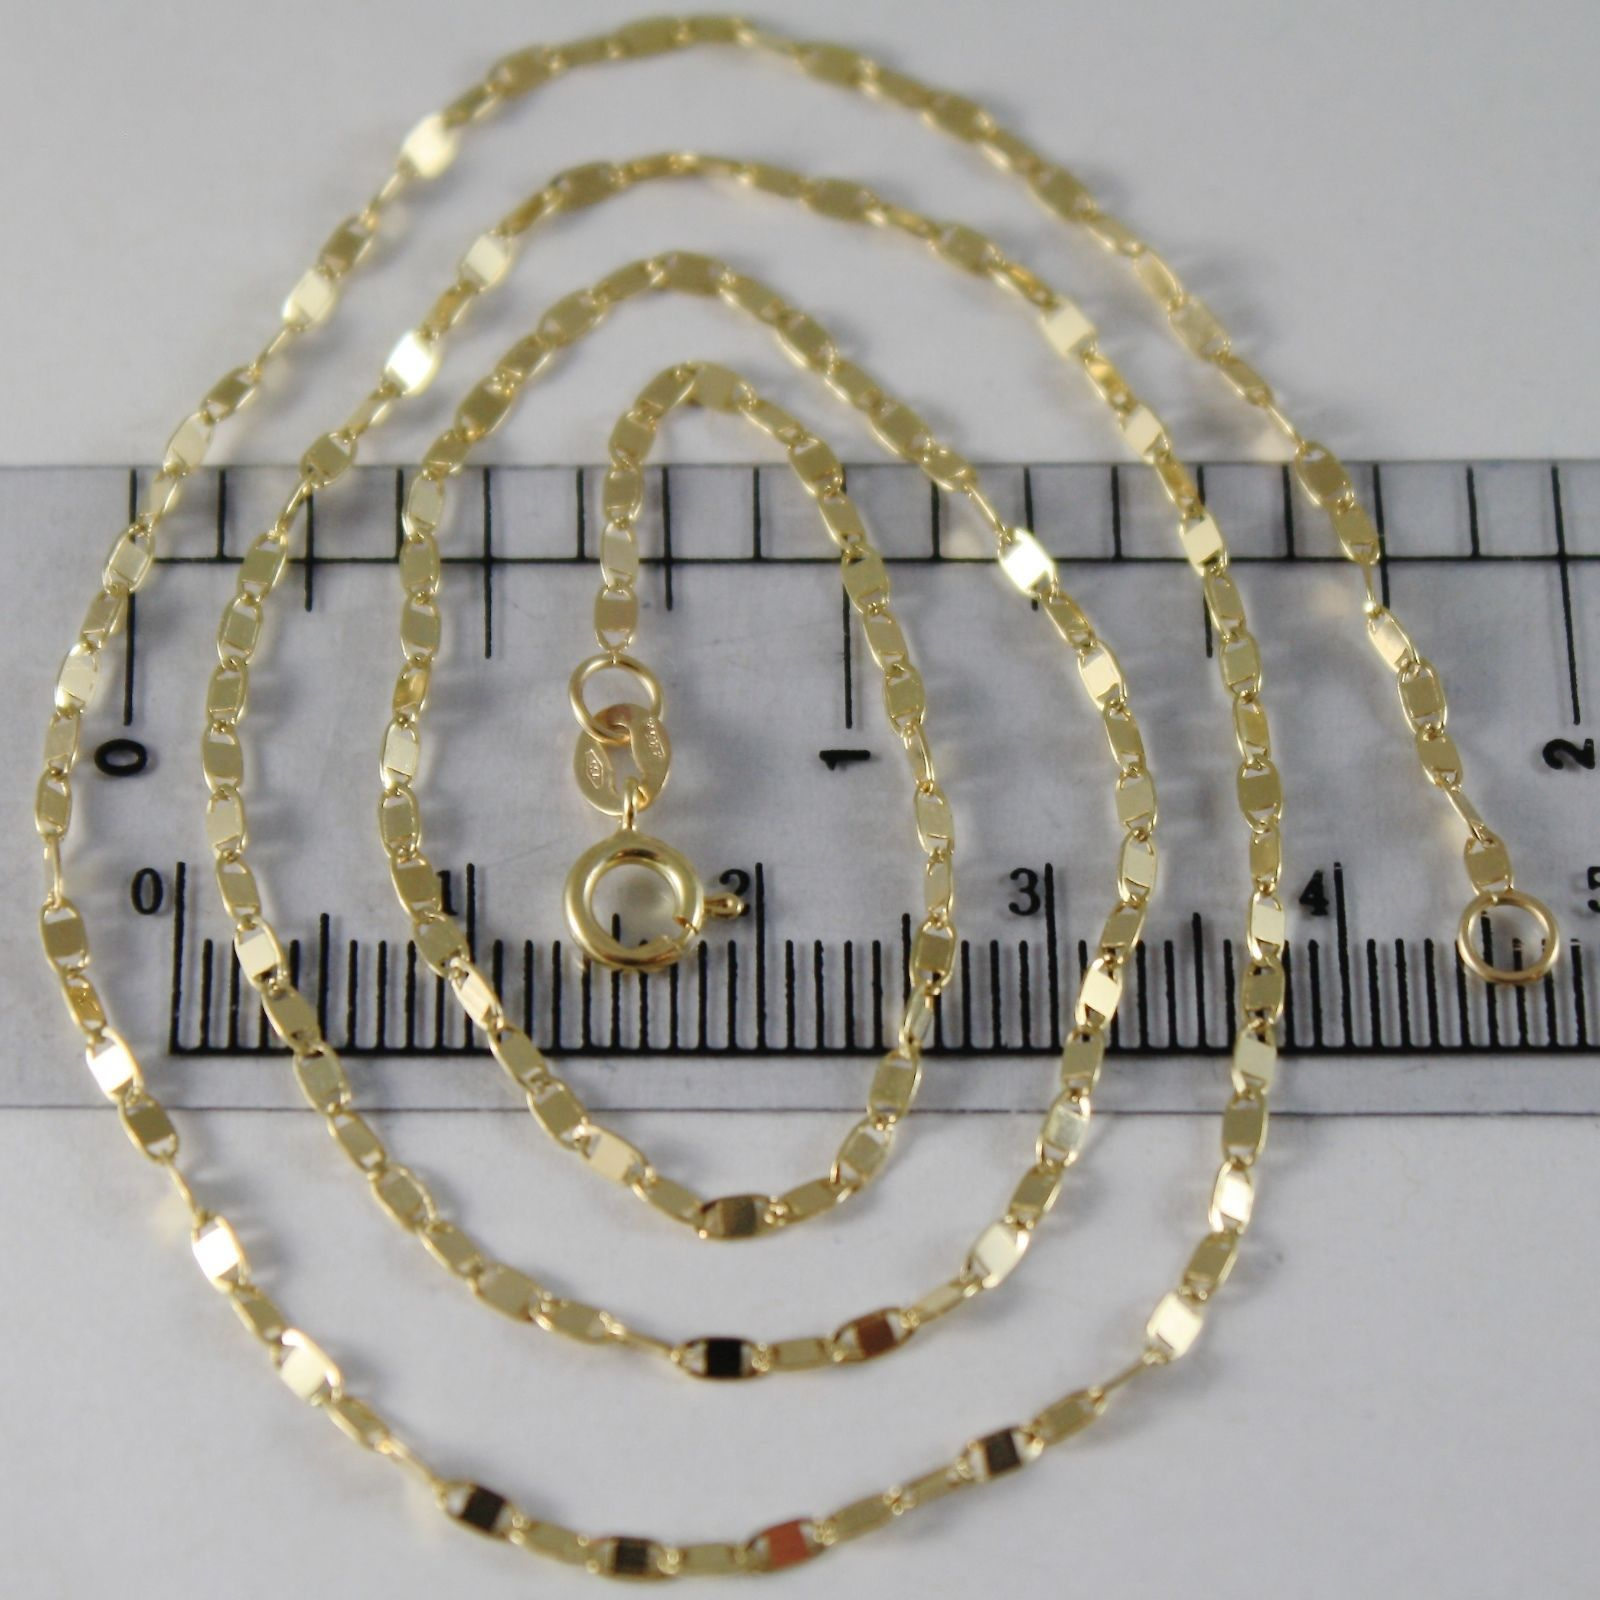 SOLID 18K YELLOW GOLD CHAIN 19.70 INCHES, MINI SQUARE MESH 1.8 MM, MADE IN ITALY